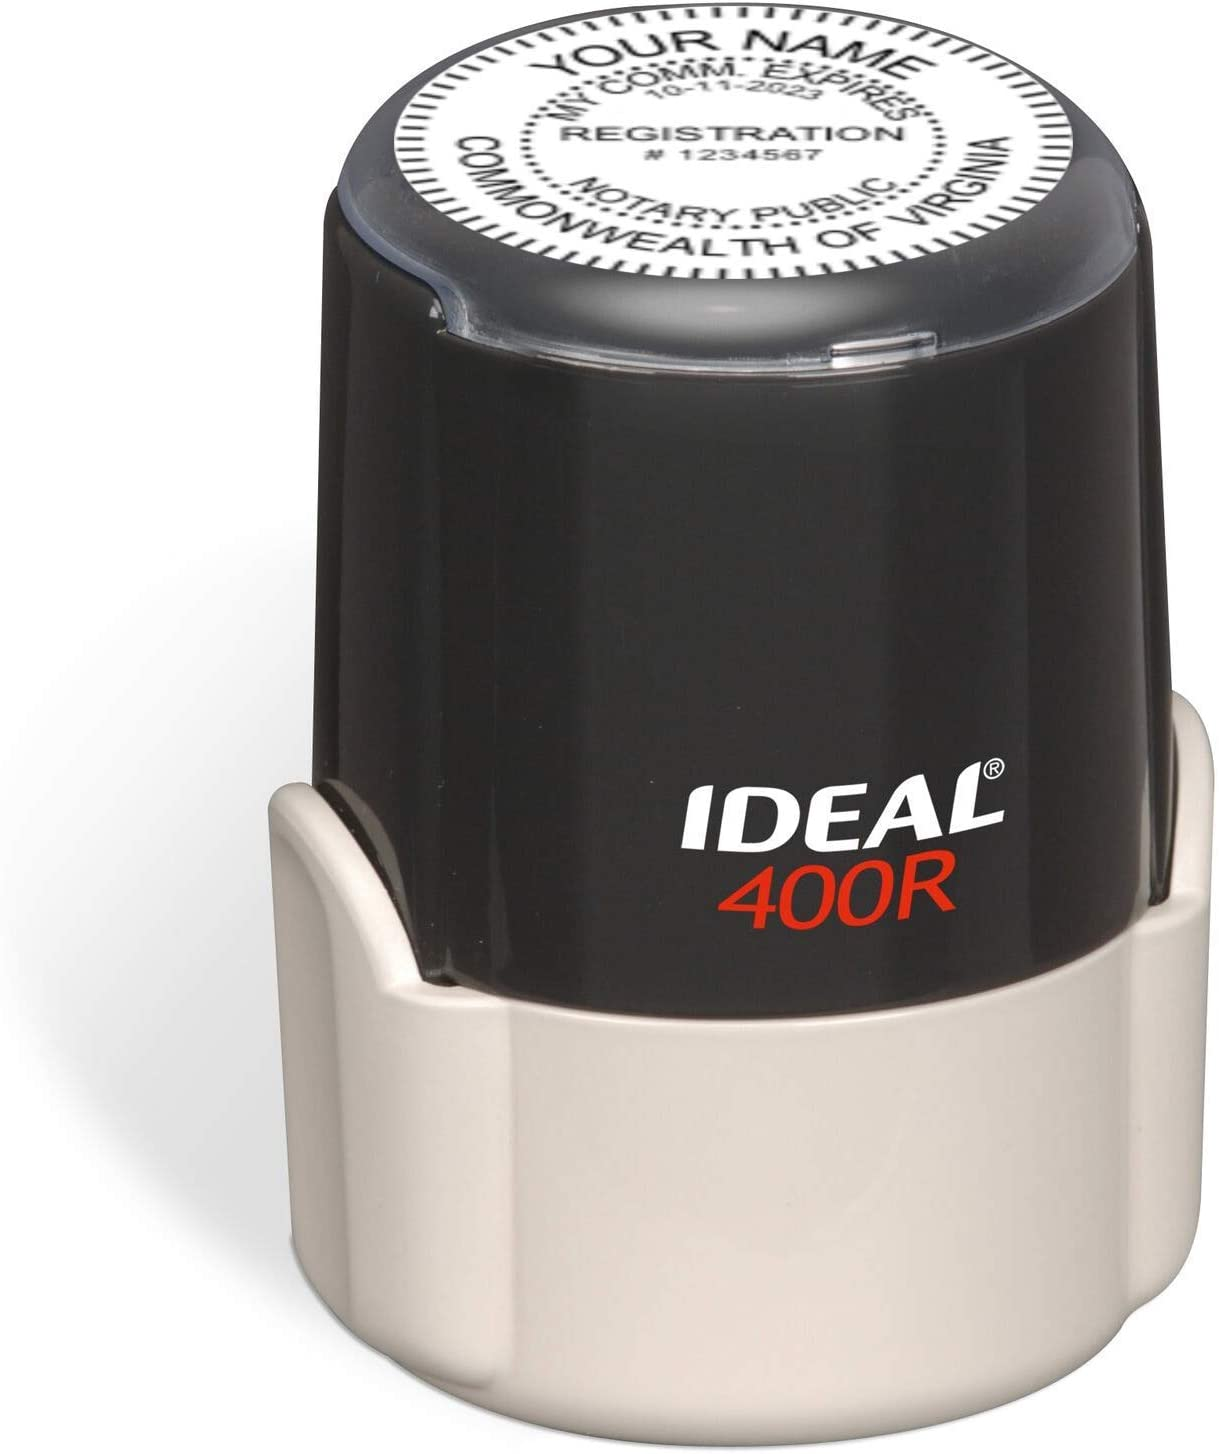 Ideal 400r with Advanced Durability Round Notary Stamp for State of Virginia Self Inking Unit